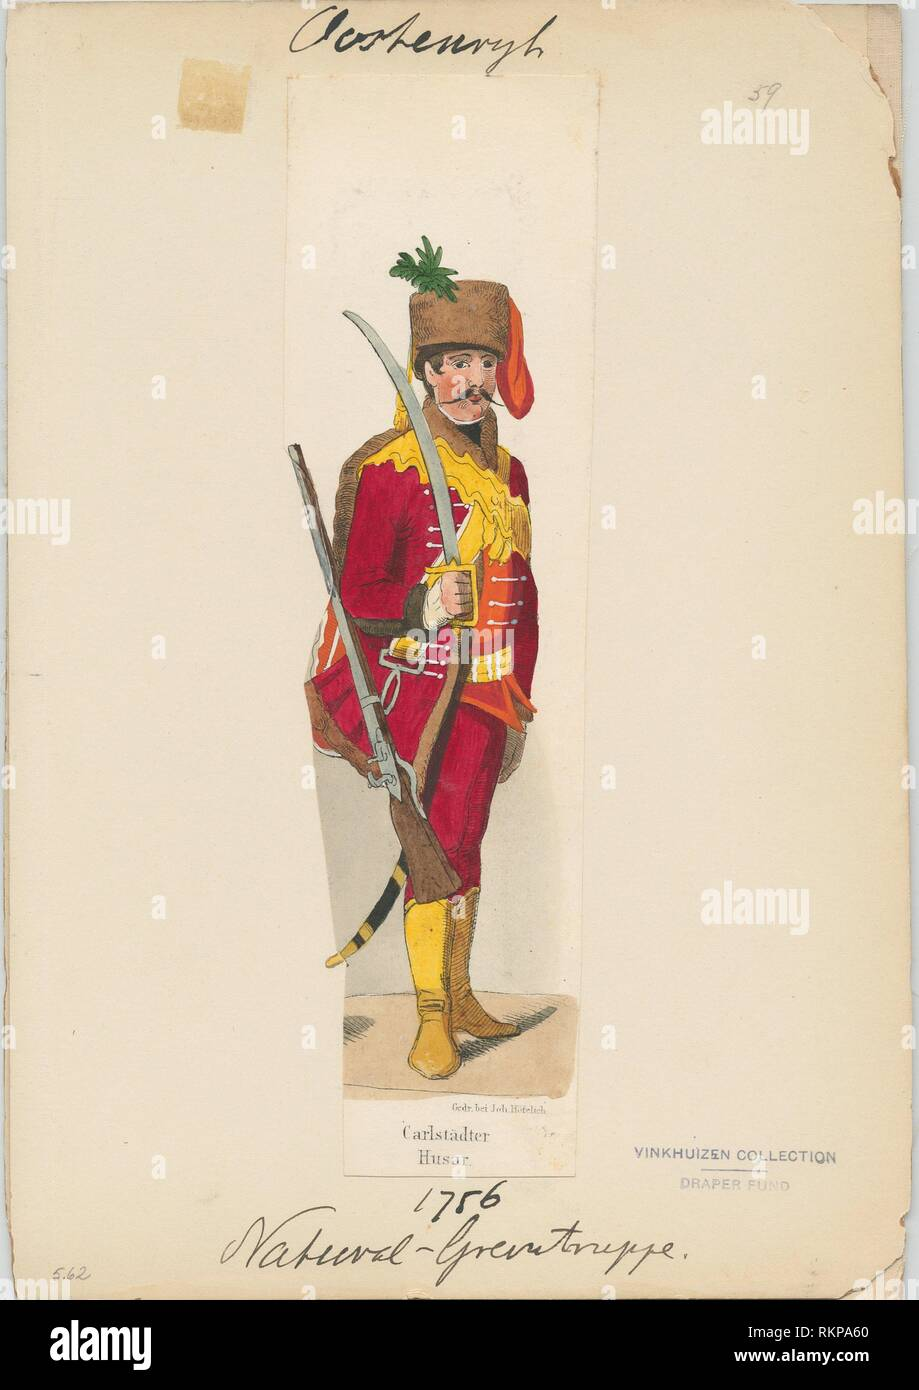 Carlstädter Husar. Vinkhuijzen, Hendrik Jacobus (Collector). The Vinkhuijzen collection of military uniforms Austria Austria, 1741-1756. Date - Stock Image